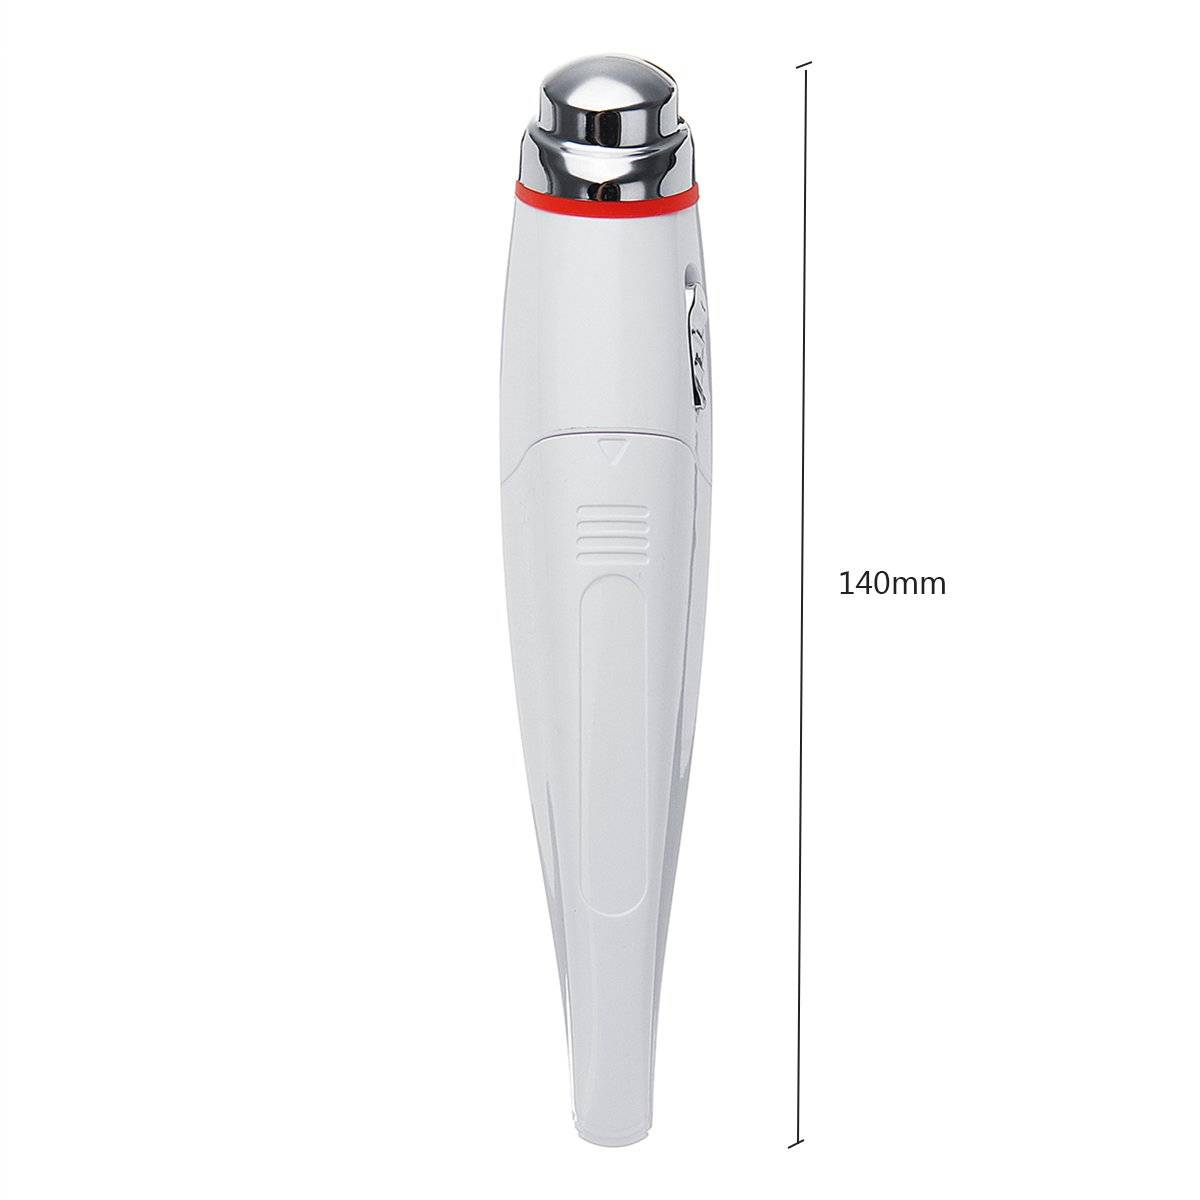 Vibration Ionic Sonic Eye Massager Anti-ageing Wrinkle Wand